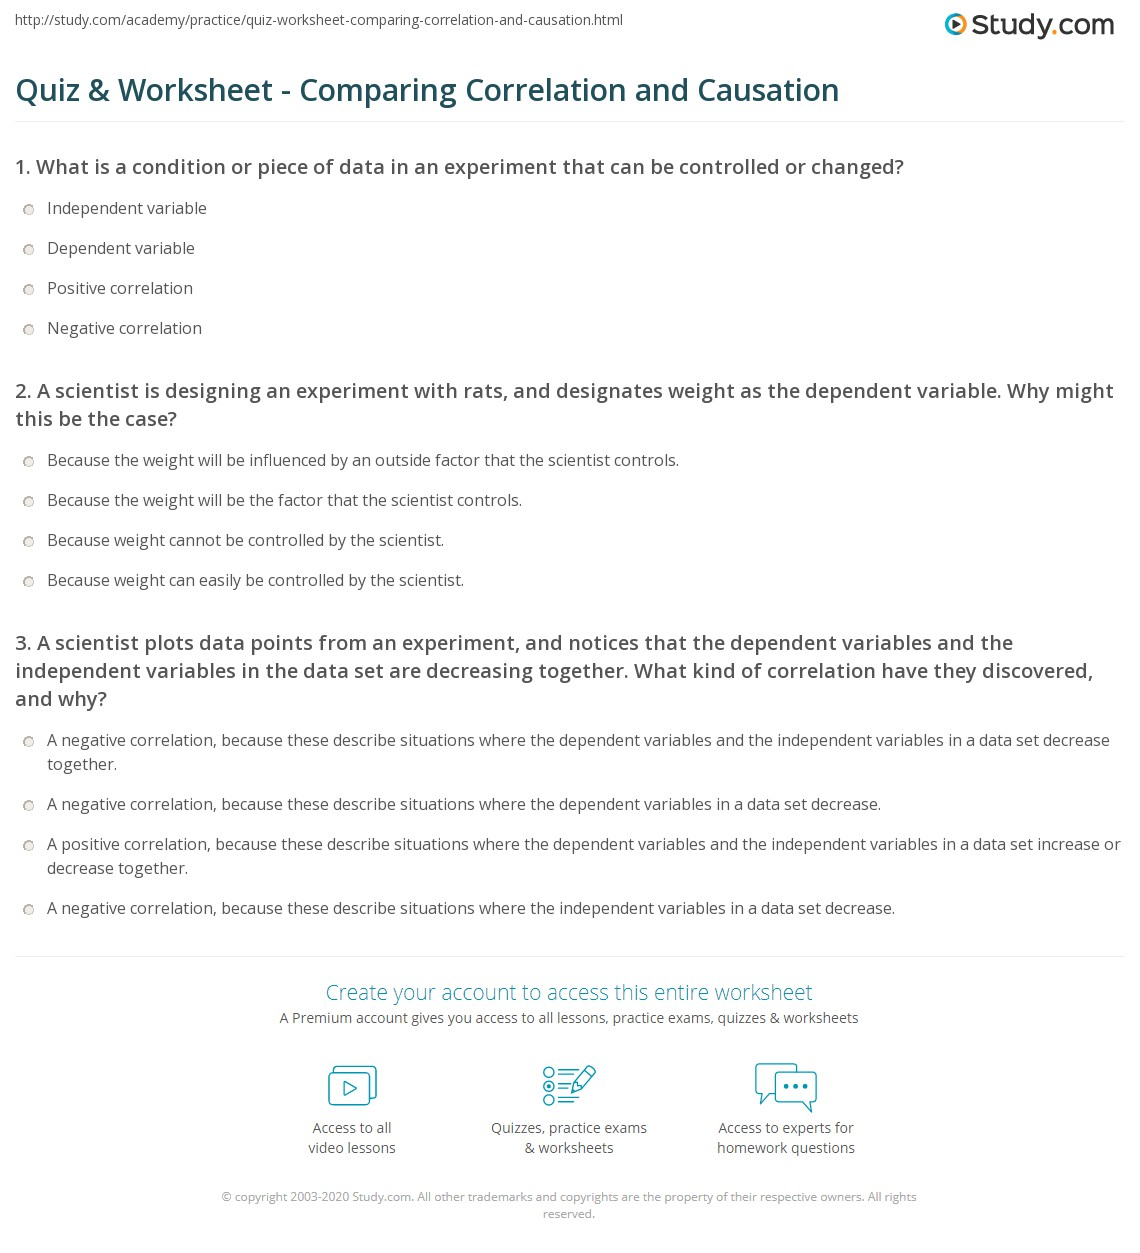 Aldiablosus  Stunning Quiz Amp Worksheet  Comparing Correlation And Causation  Studycom With Lovable Print Correlation Vs Causation Differences Amp Definition Worksheet With Adorable Grammar Comprehension Worksheets Also Simple Algebra Worksheets Ks In Addition Grammar Worksheets Year  And Compare Worksheets In Excel  As Well As Free Worksheets On Prepositions Additionally Pattern Shapes Worksheets From Studycom With Aldiablosus  Lovable Quiz Amp Worksheet  Comparing Correlation And Causation  Studycom With Adorable Print Correlation Vs Causation Differences Amp Definition Worksheet And Stunning Grammar Comprehension Worksheets Also Simple Algebra Worksheets Ks In Addition Grammar Worksheets Year  From Studycom